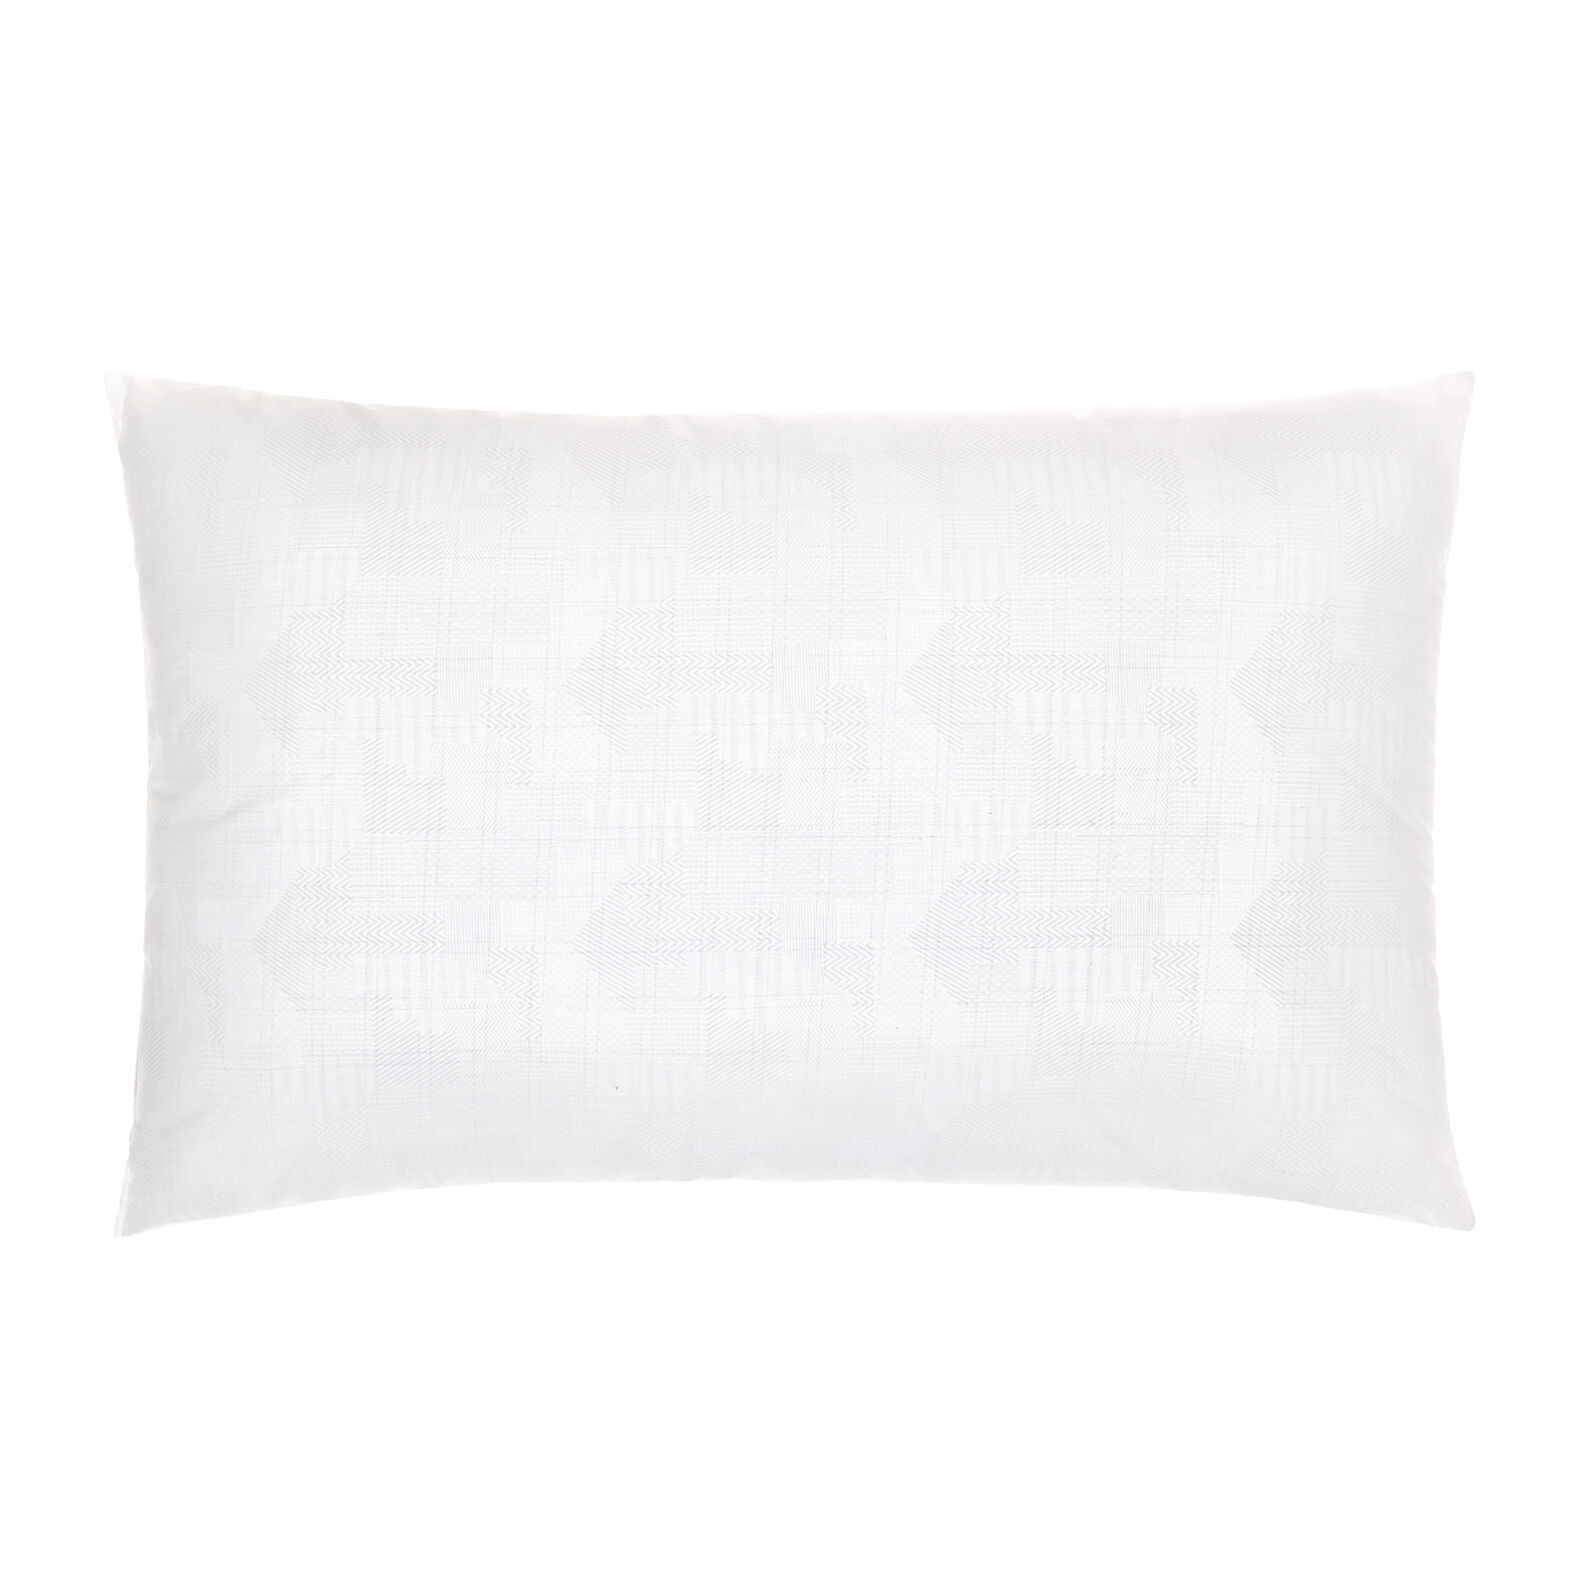 Pair of pillows in 100% cotton